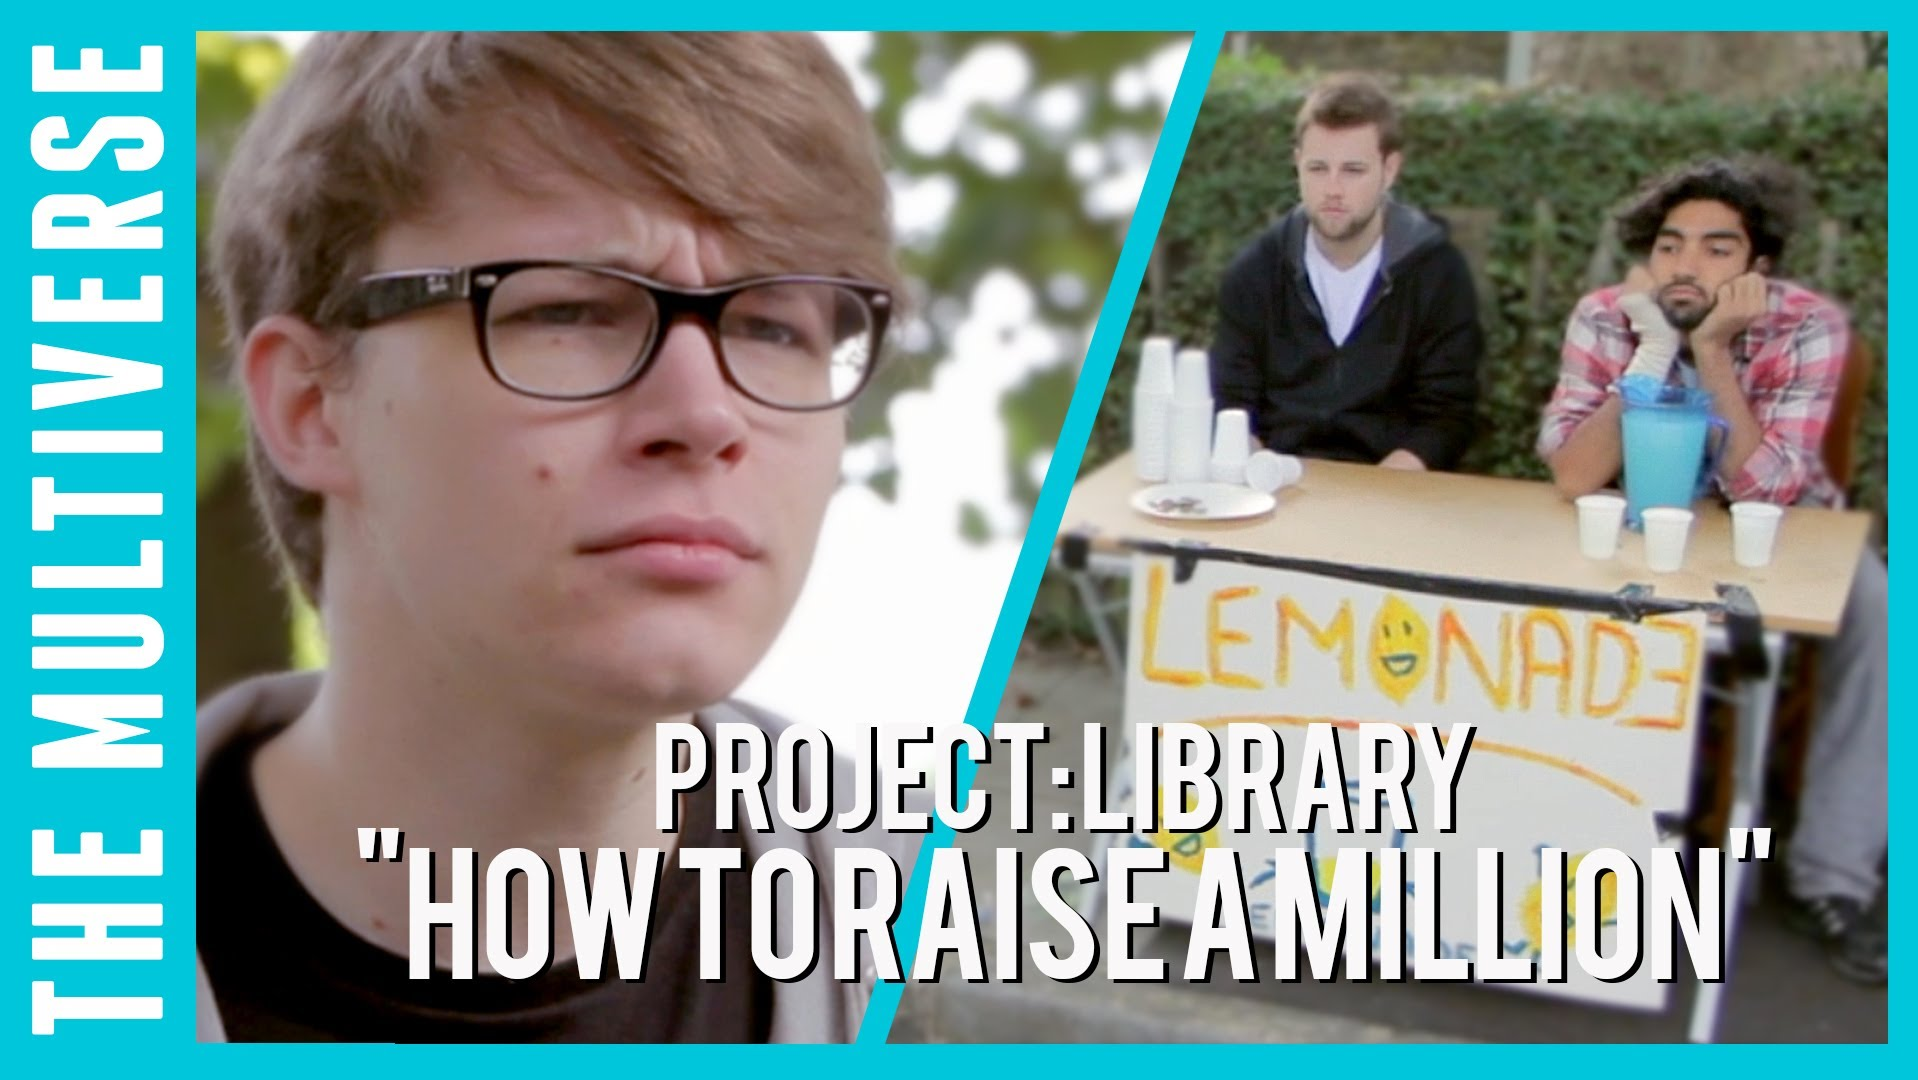 How To Raise A Million | Project: Library